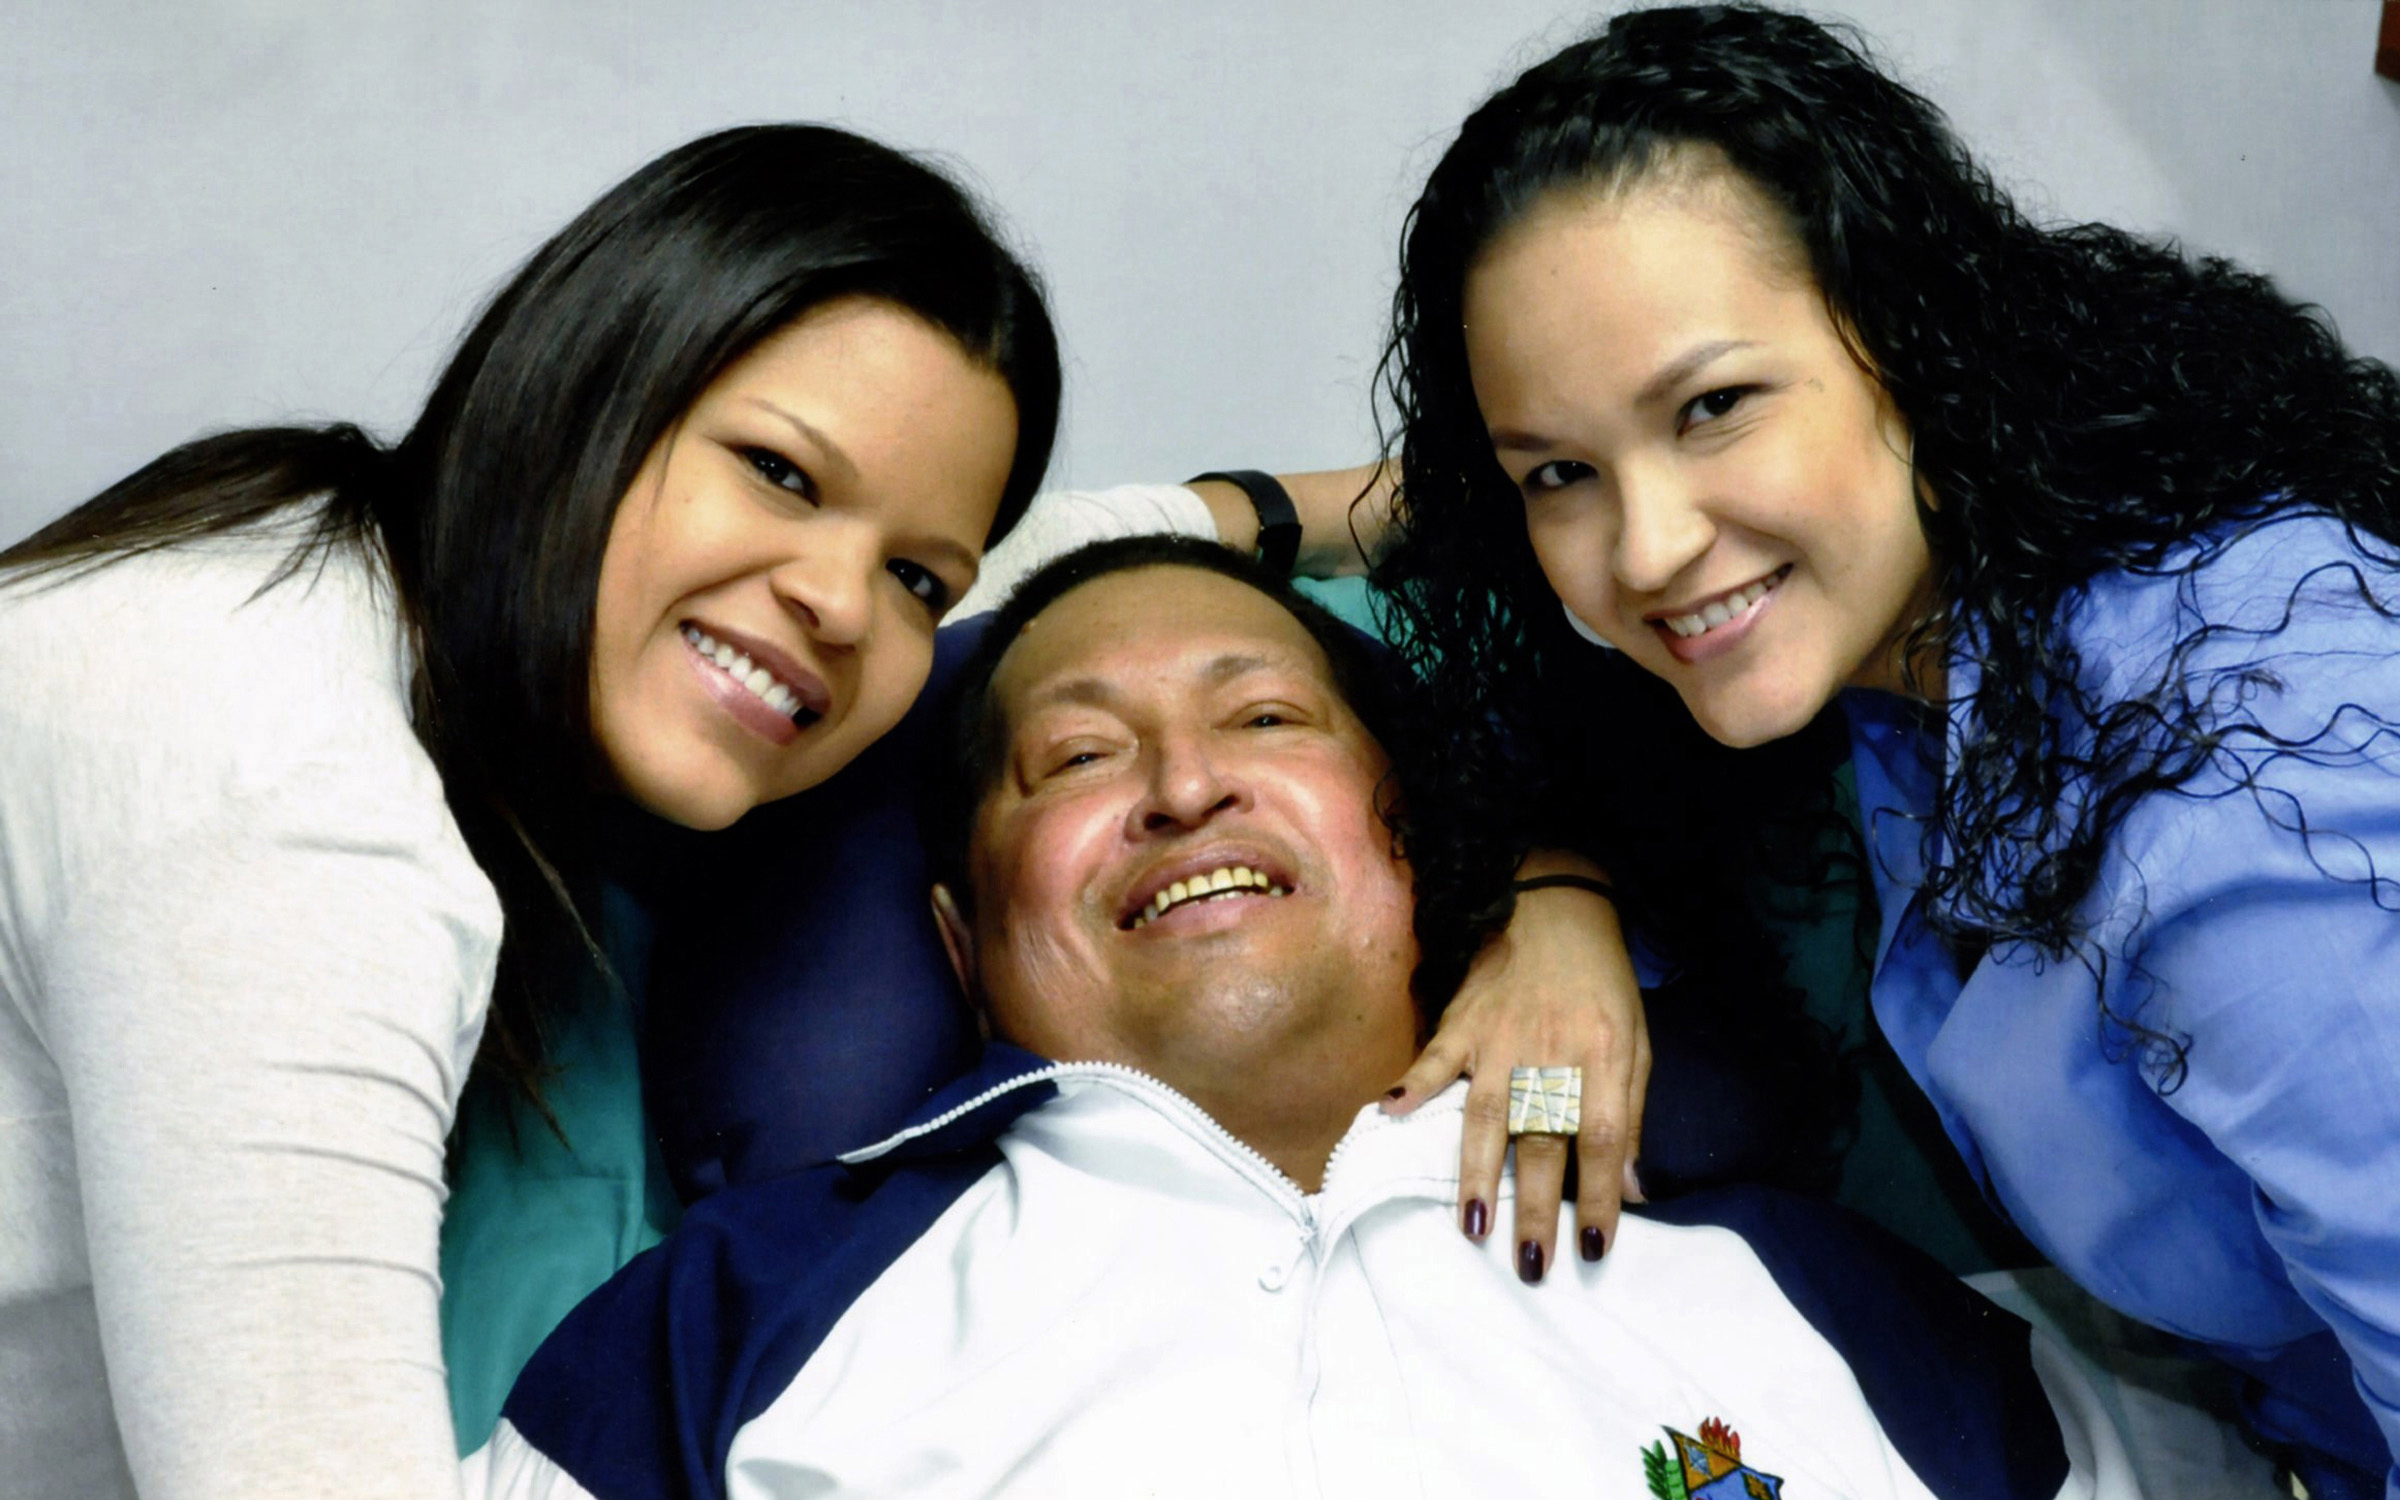 Venezuela's President Hugo Chavez smiles in between his daughters, Rosa Virginia (R) and Maria while recovering from cancer surgery in Havana in this photograph released by the Ministry of Information on February 15, 2013. ©REUTERS/Ministry of Information/Handout